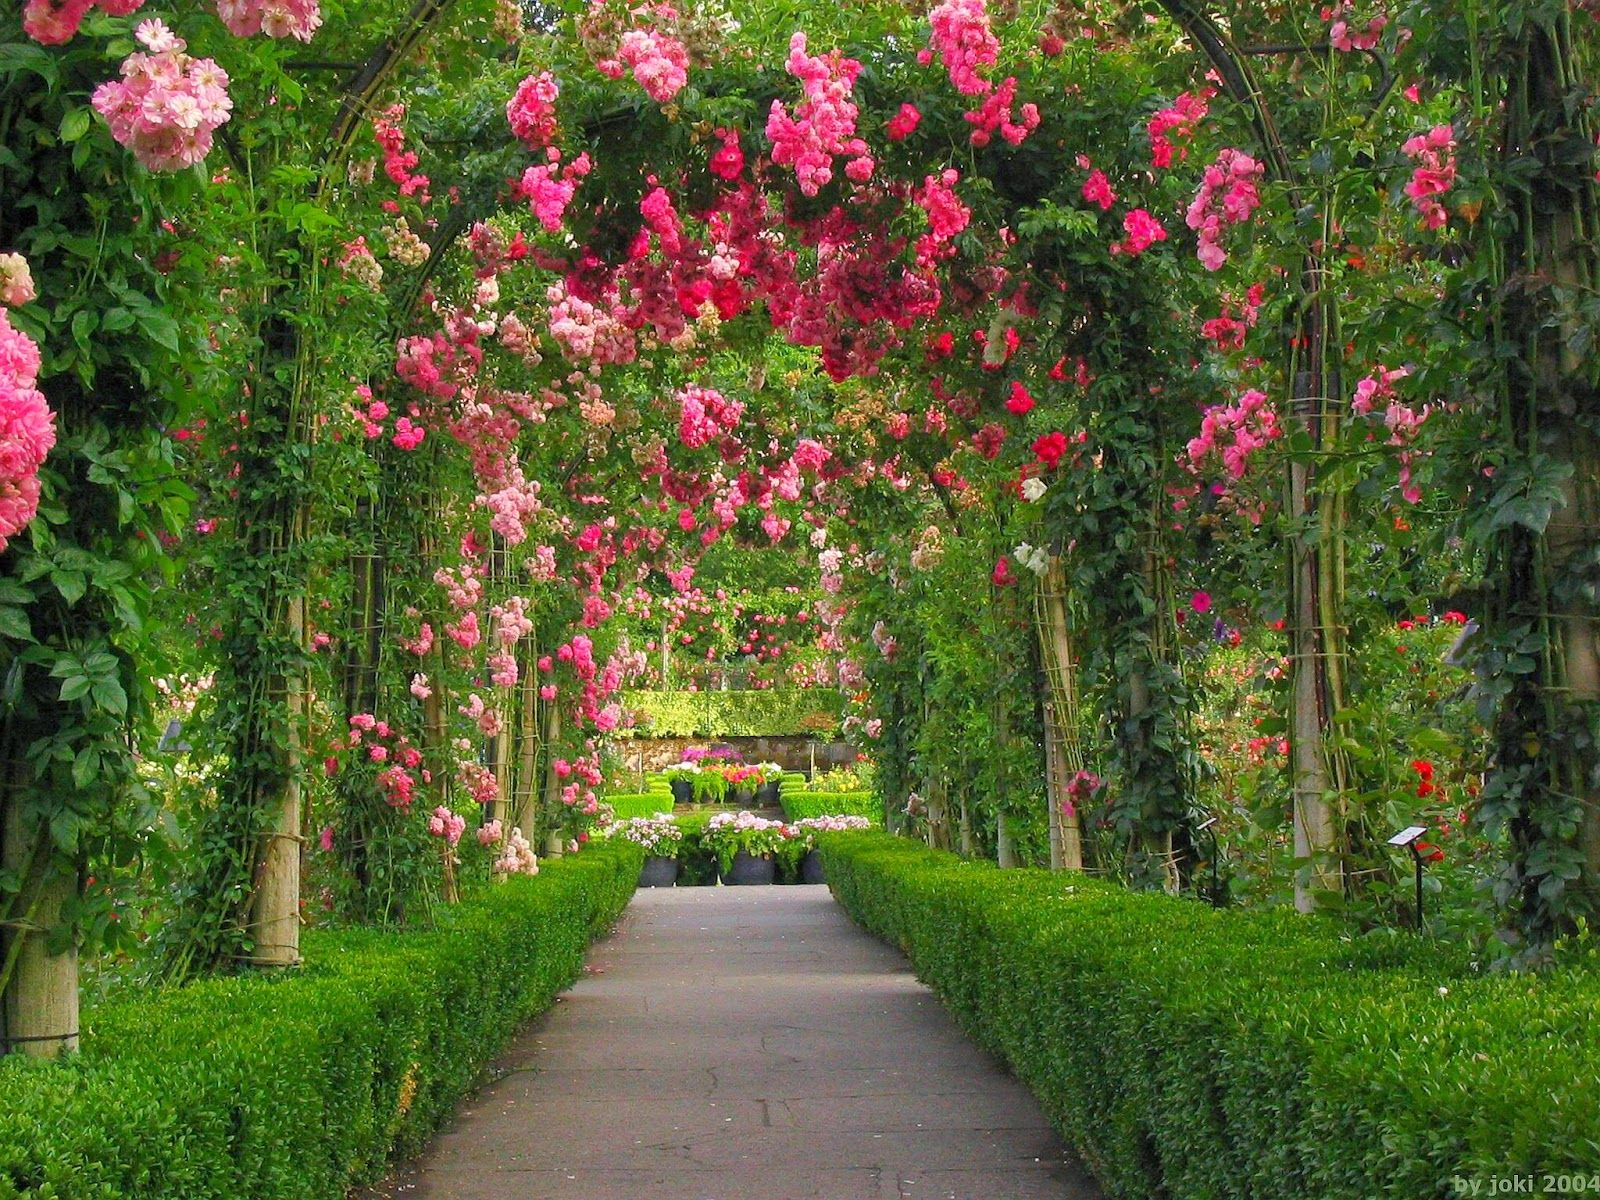 red rose flower garden wallpaper|http://refreshrose.blogspot